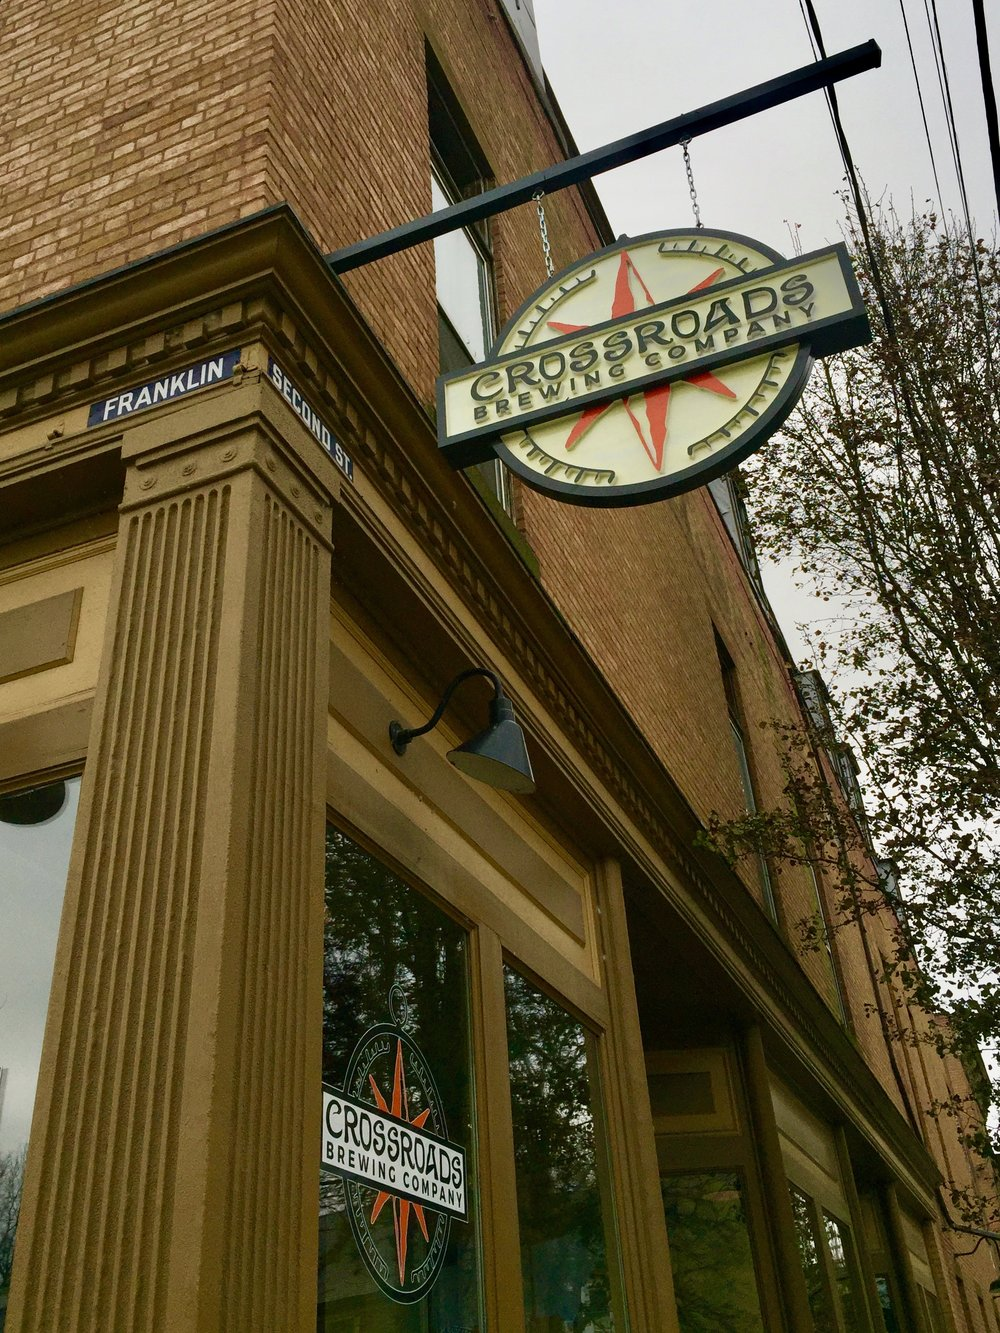 Crossroads Brewing Company in Athens, NY